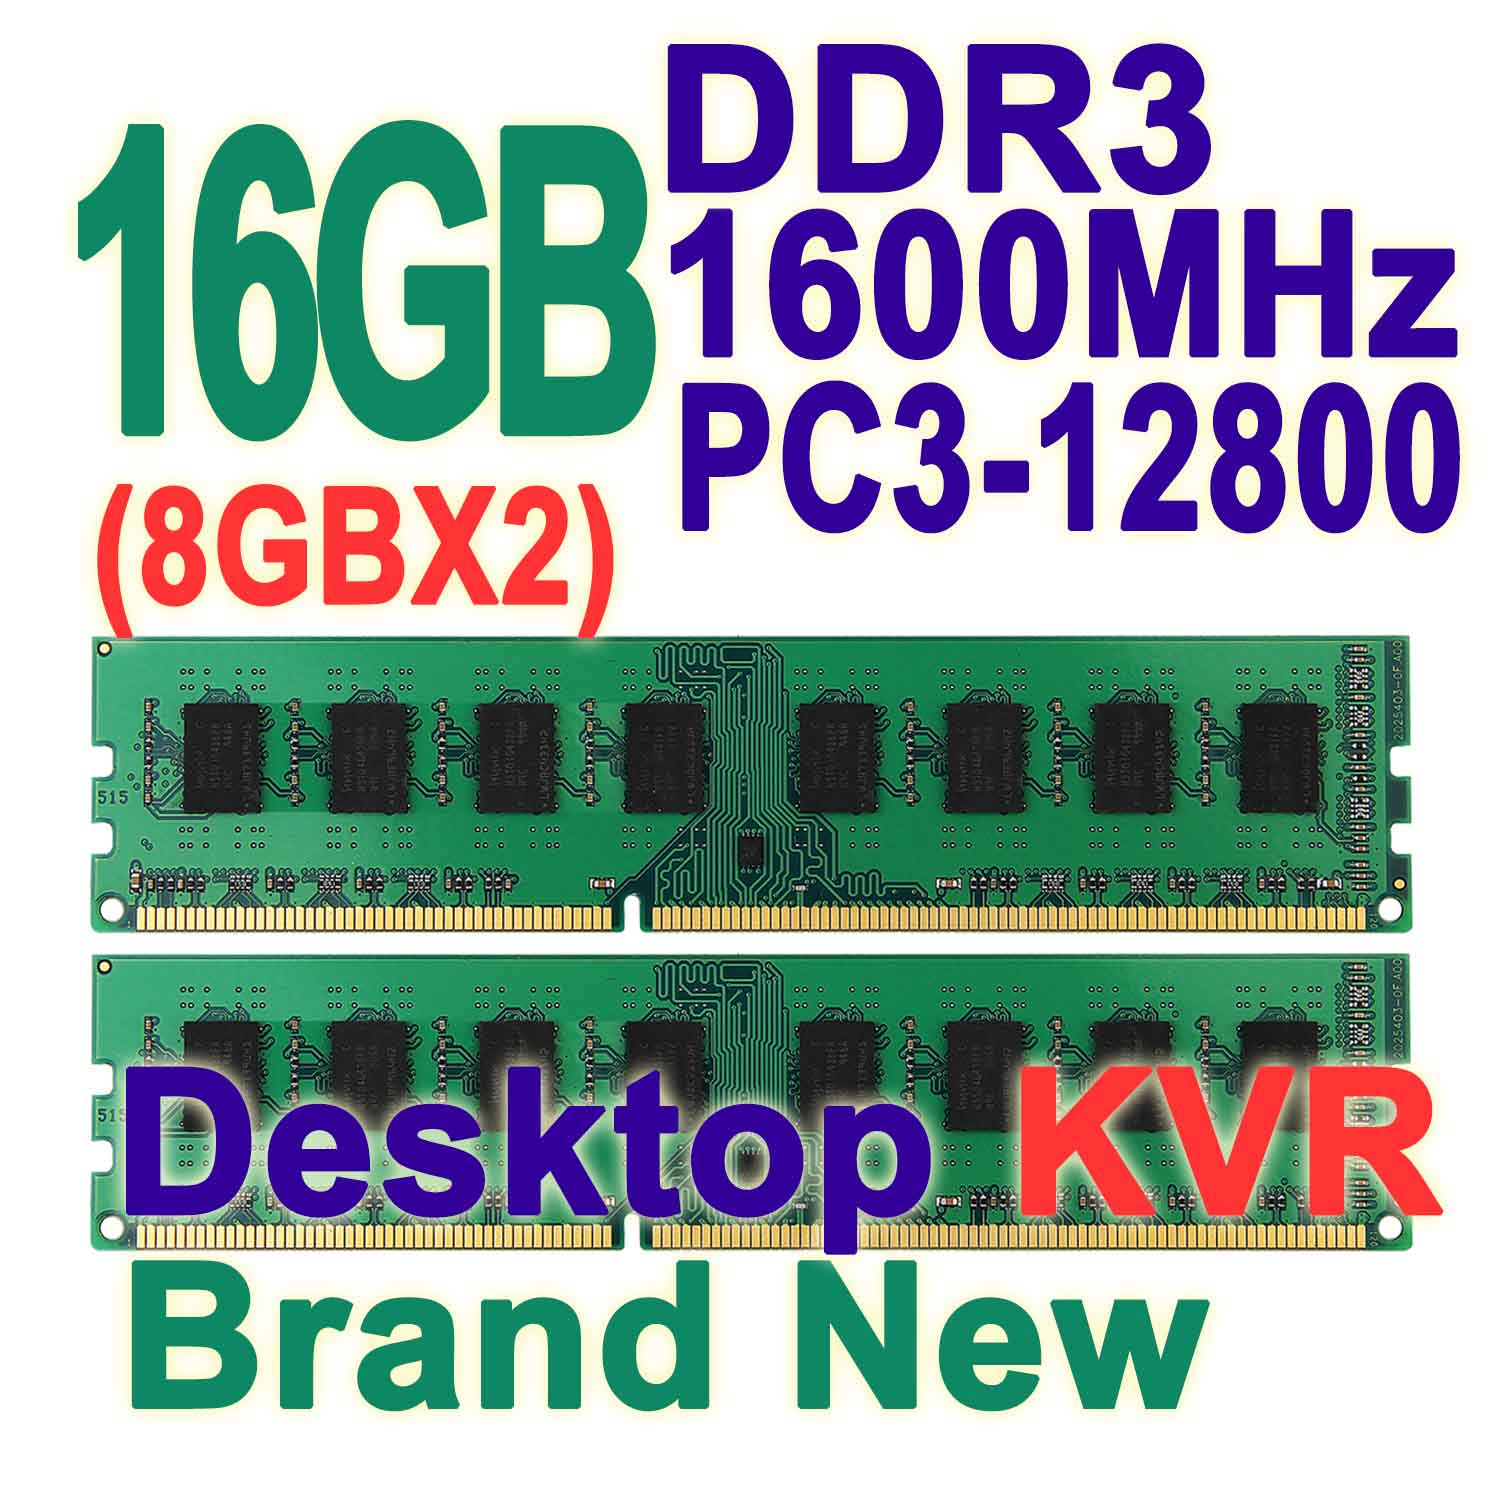 16GB Kit ( 8GB X2) Dual Channel DDR3 1600MHz 240-pin DIMM PC3-12800 Non-ECC CL11 Computer Desktop Memory RAM For Intel &amp; AMD KVR<br><br>Aliexpress